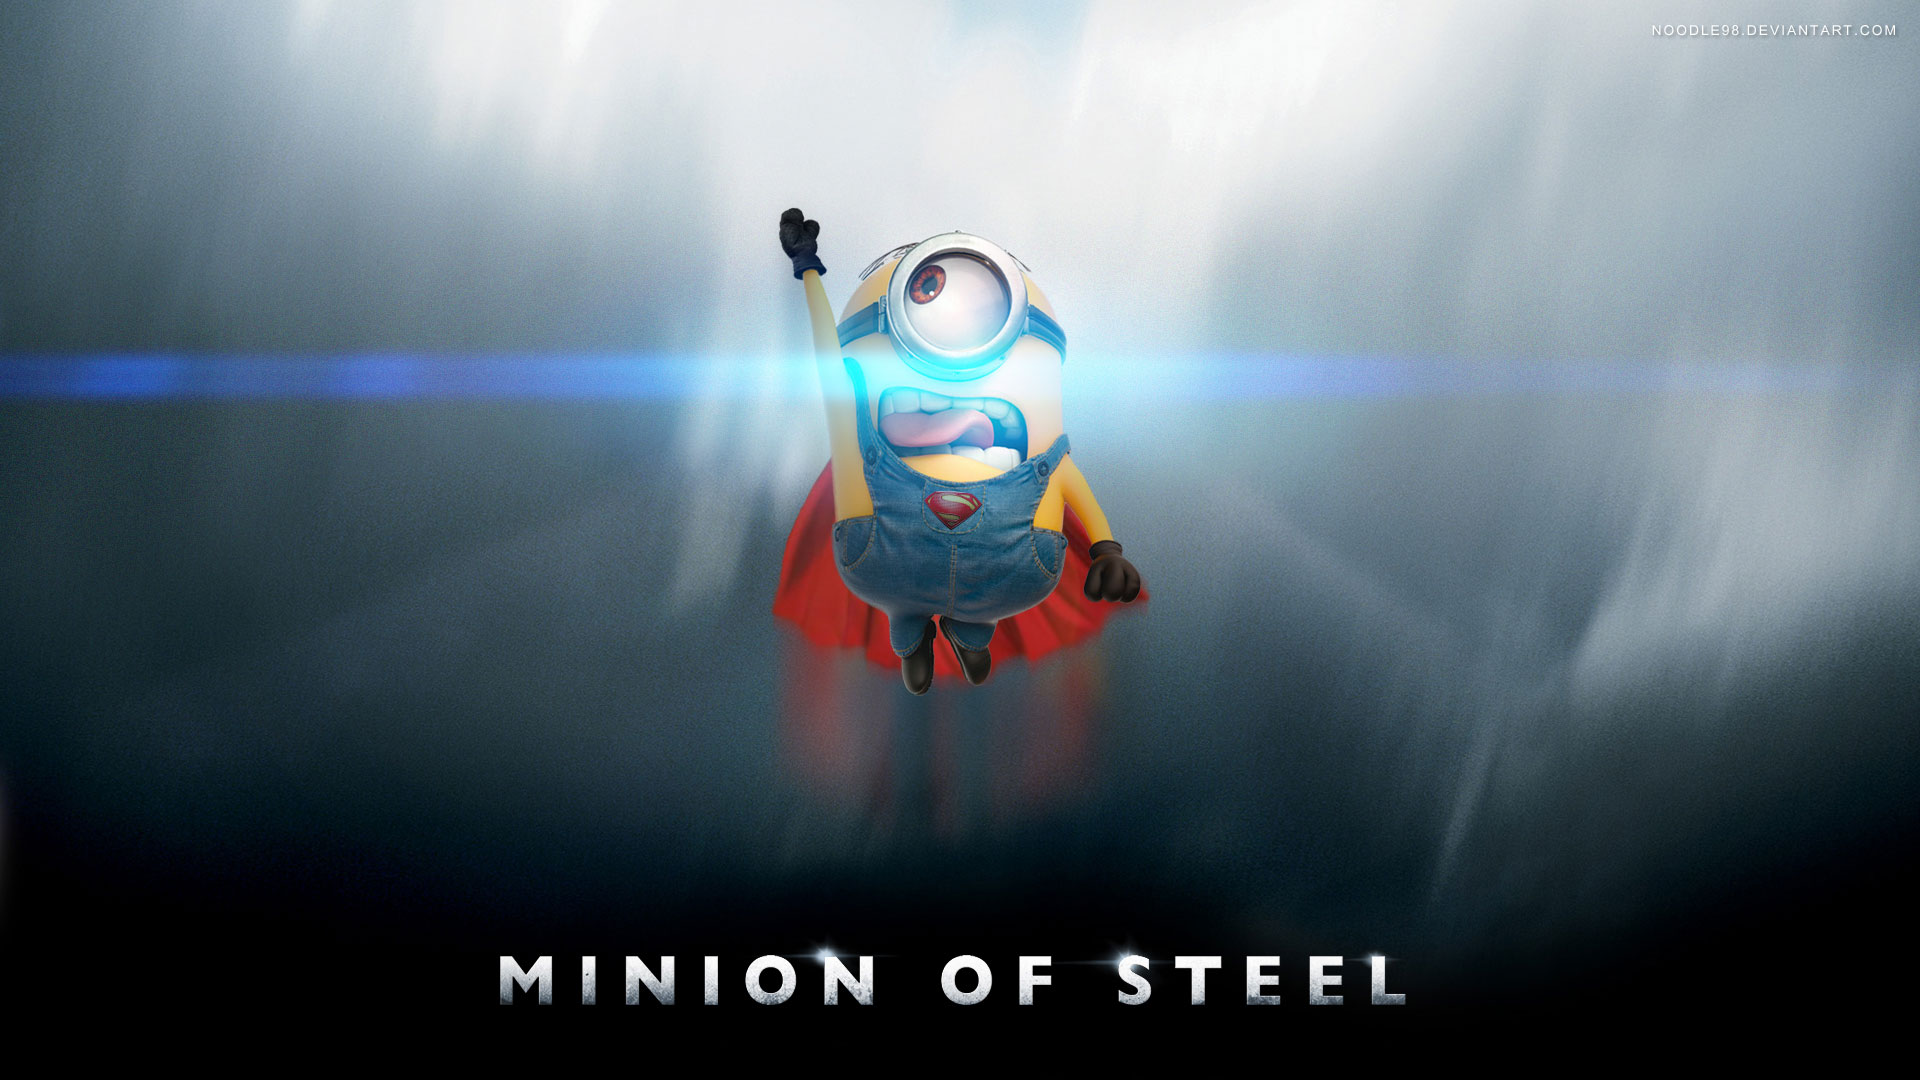 New Despicable Me 2 Minions Wallpaper Fan Art Collection 1920x1080